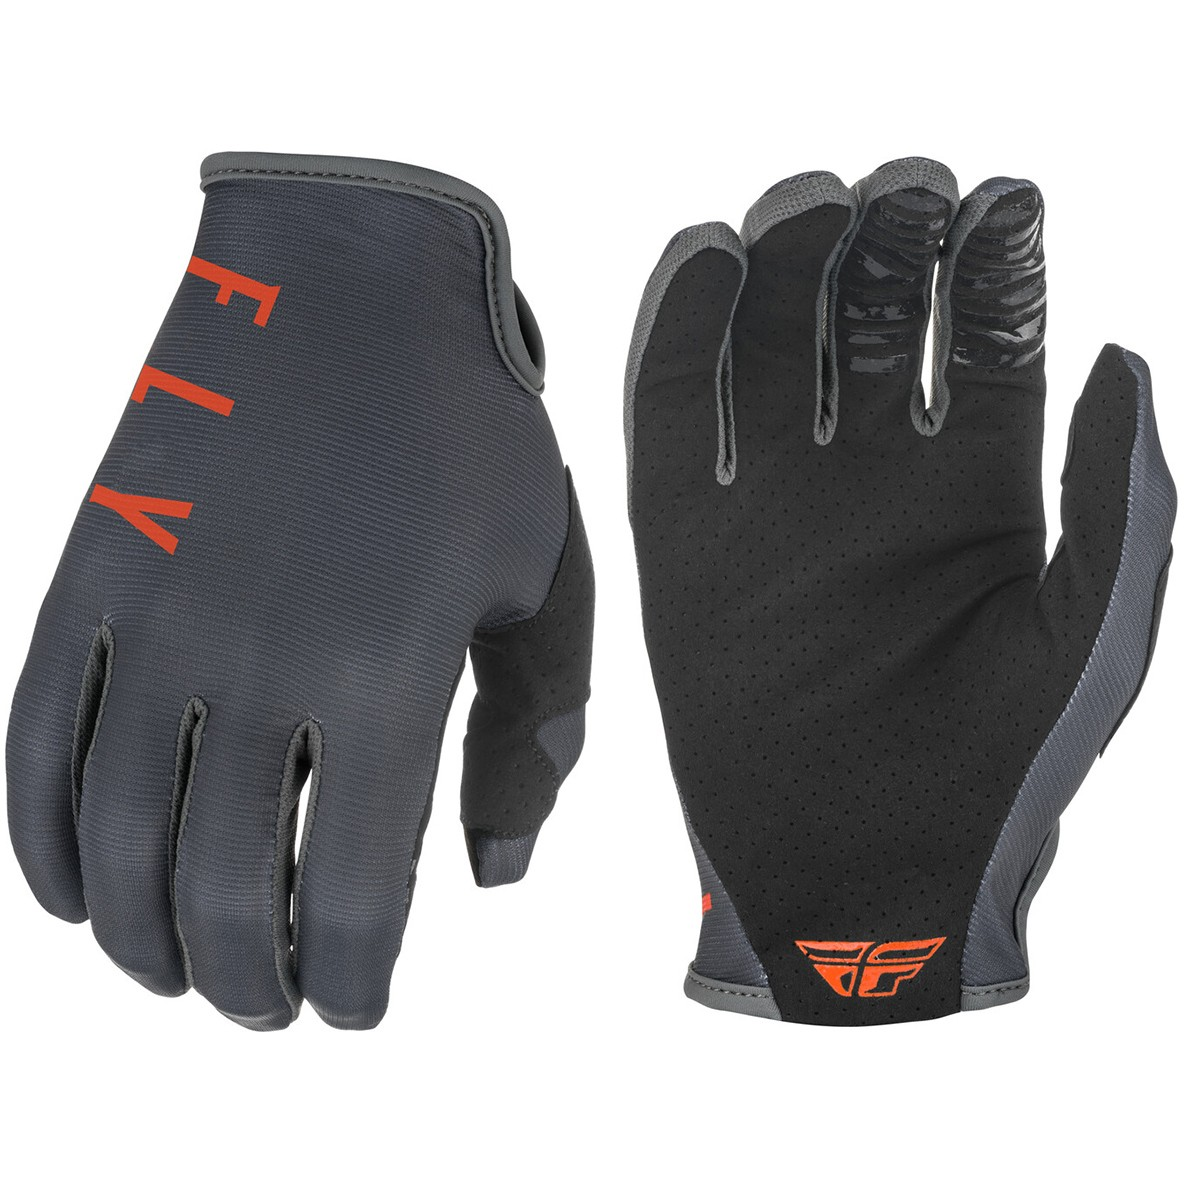 FLY LITE 2021 GLOVES